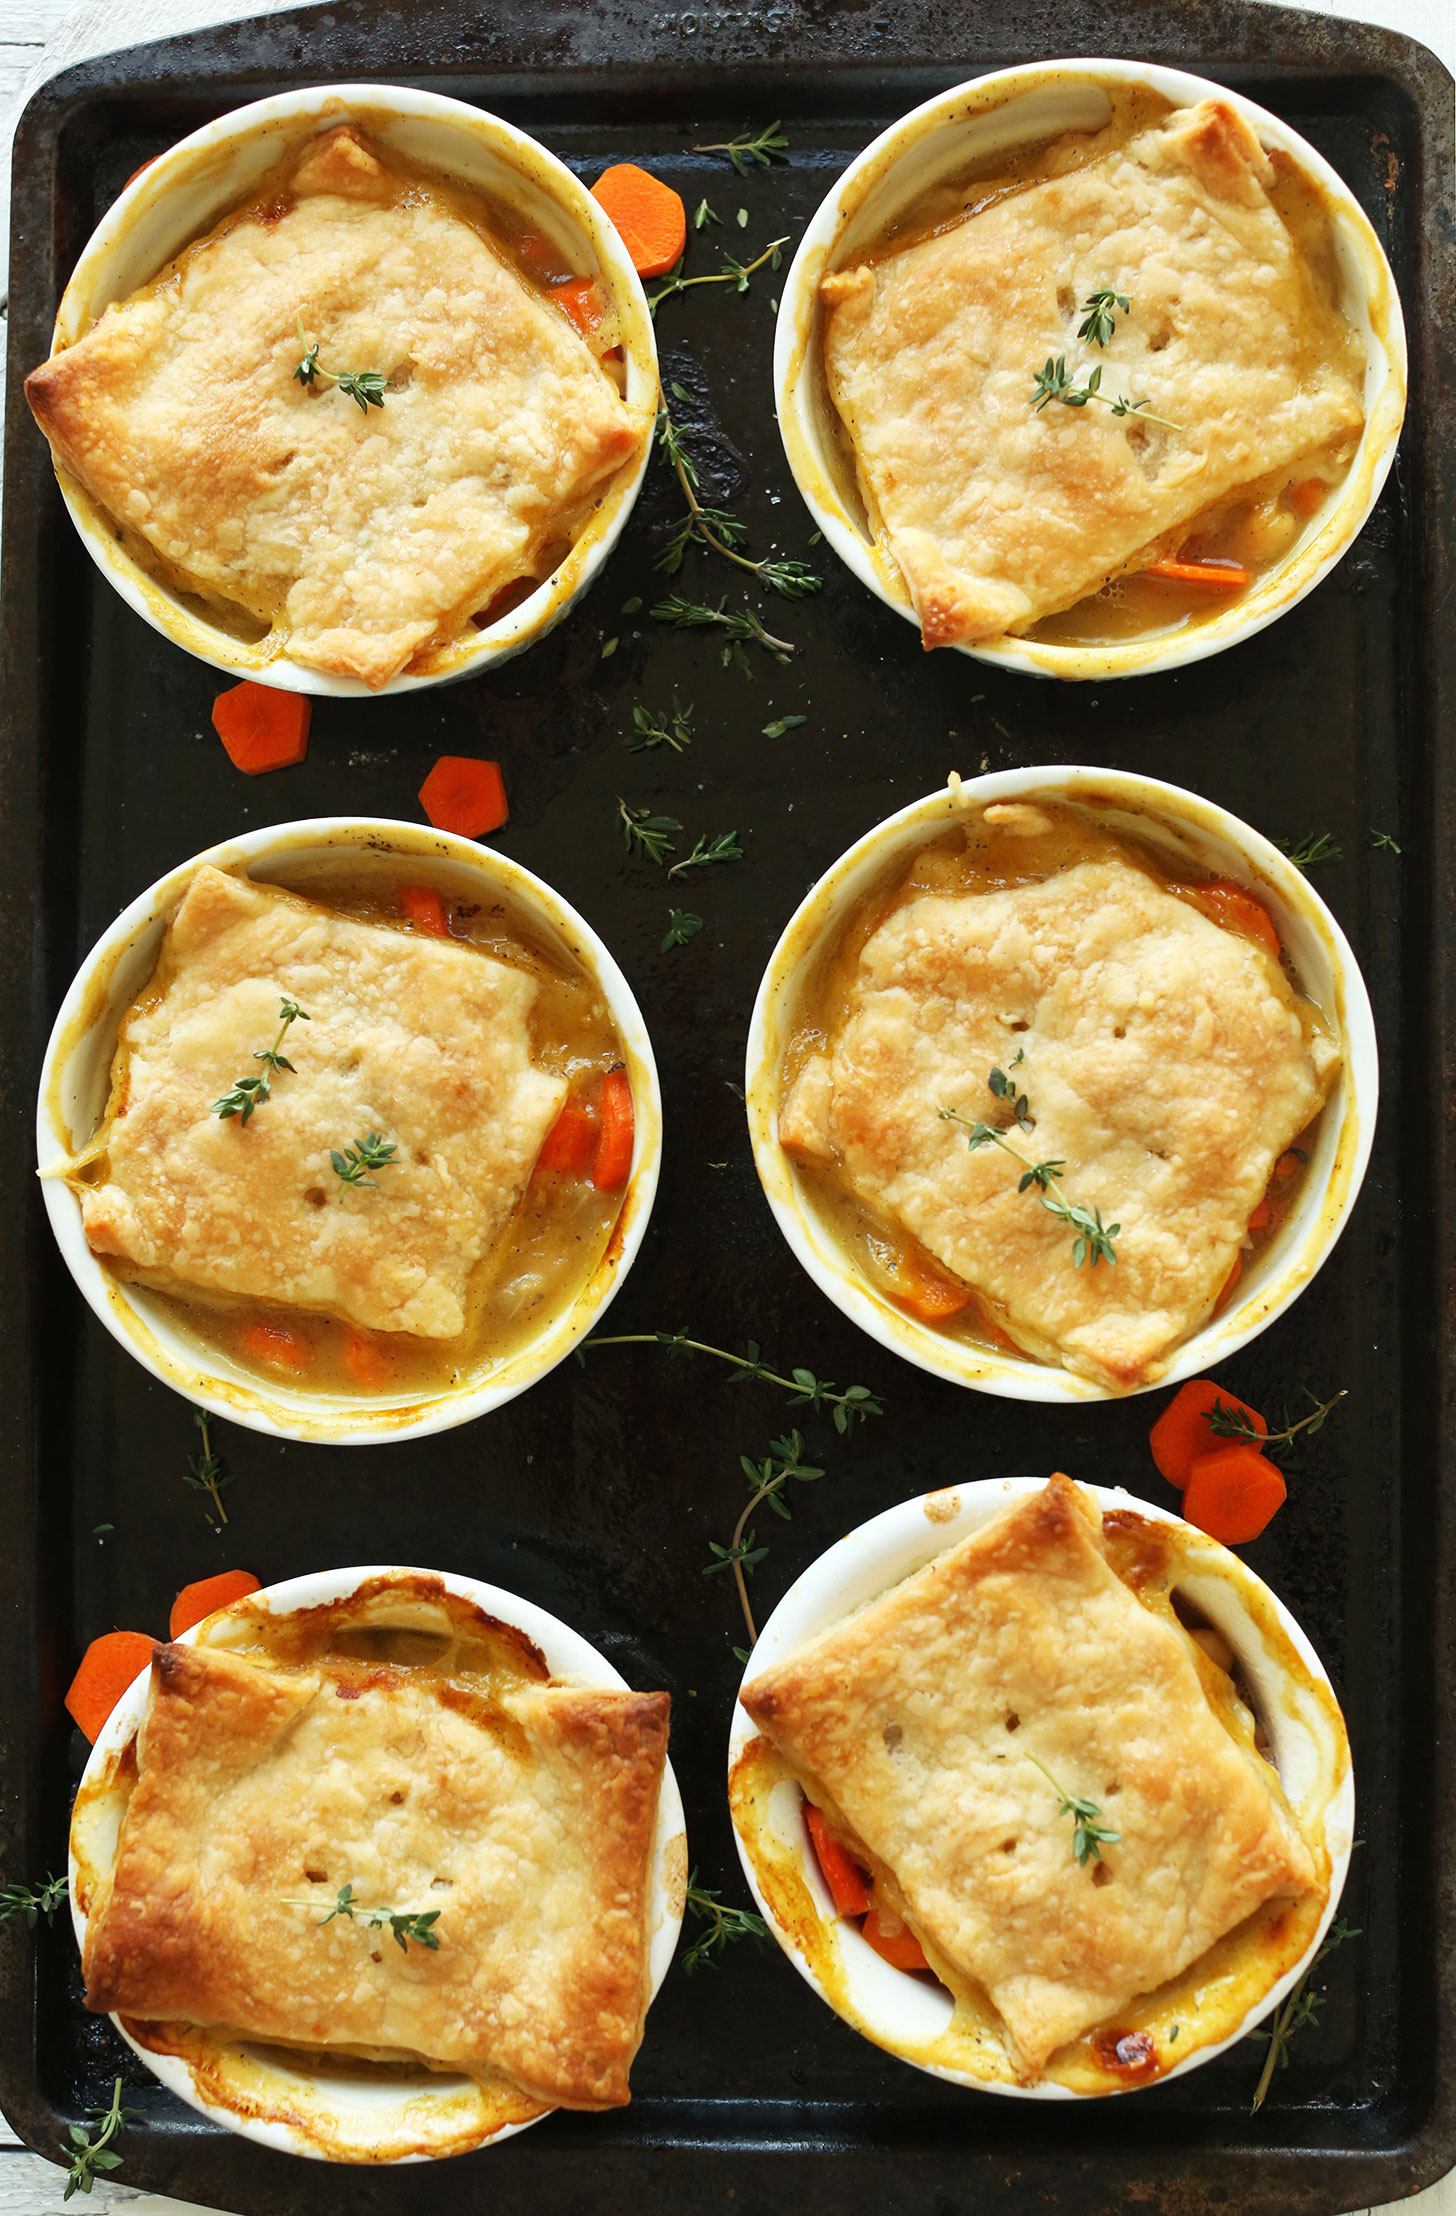 Lovable Bean Thyme Vegan Pot Pies Thyme Bean Pot Pies Minimalist Baker Recipes Healthy Winter Recipes Indian Healthy Winter Salad Recipes Six Ramekins Filled Baking Sheet nice food Healthy Winter Recipes